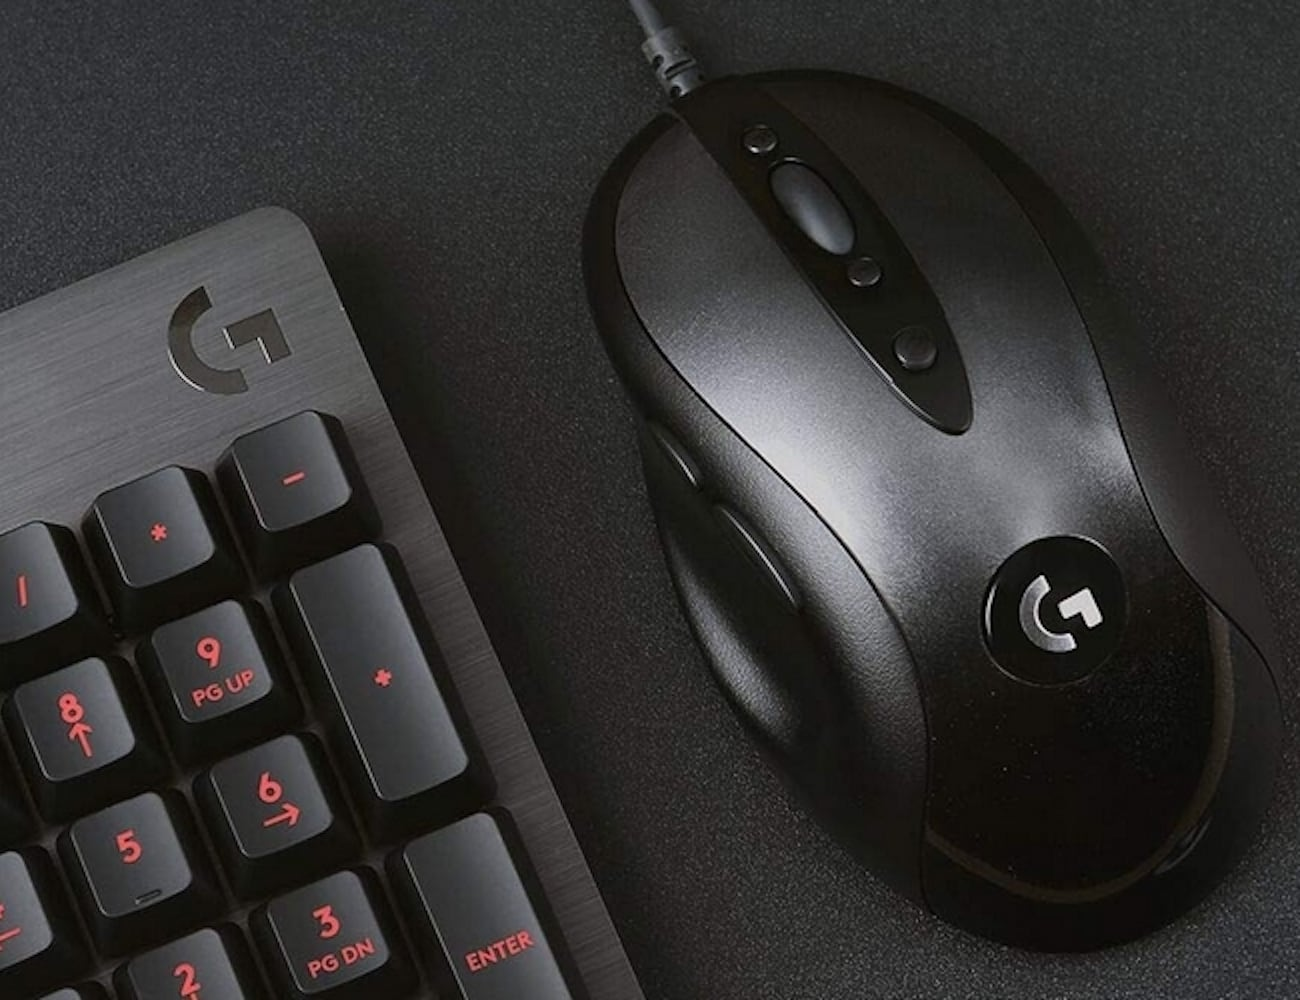 Logitech G MX518 Optical Gaming Mouse modernizes the original